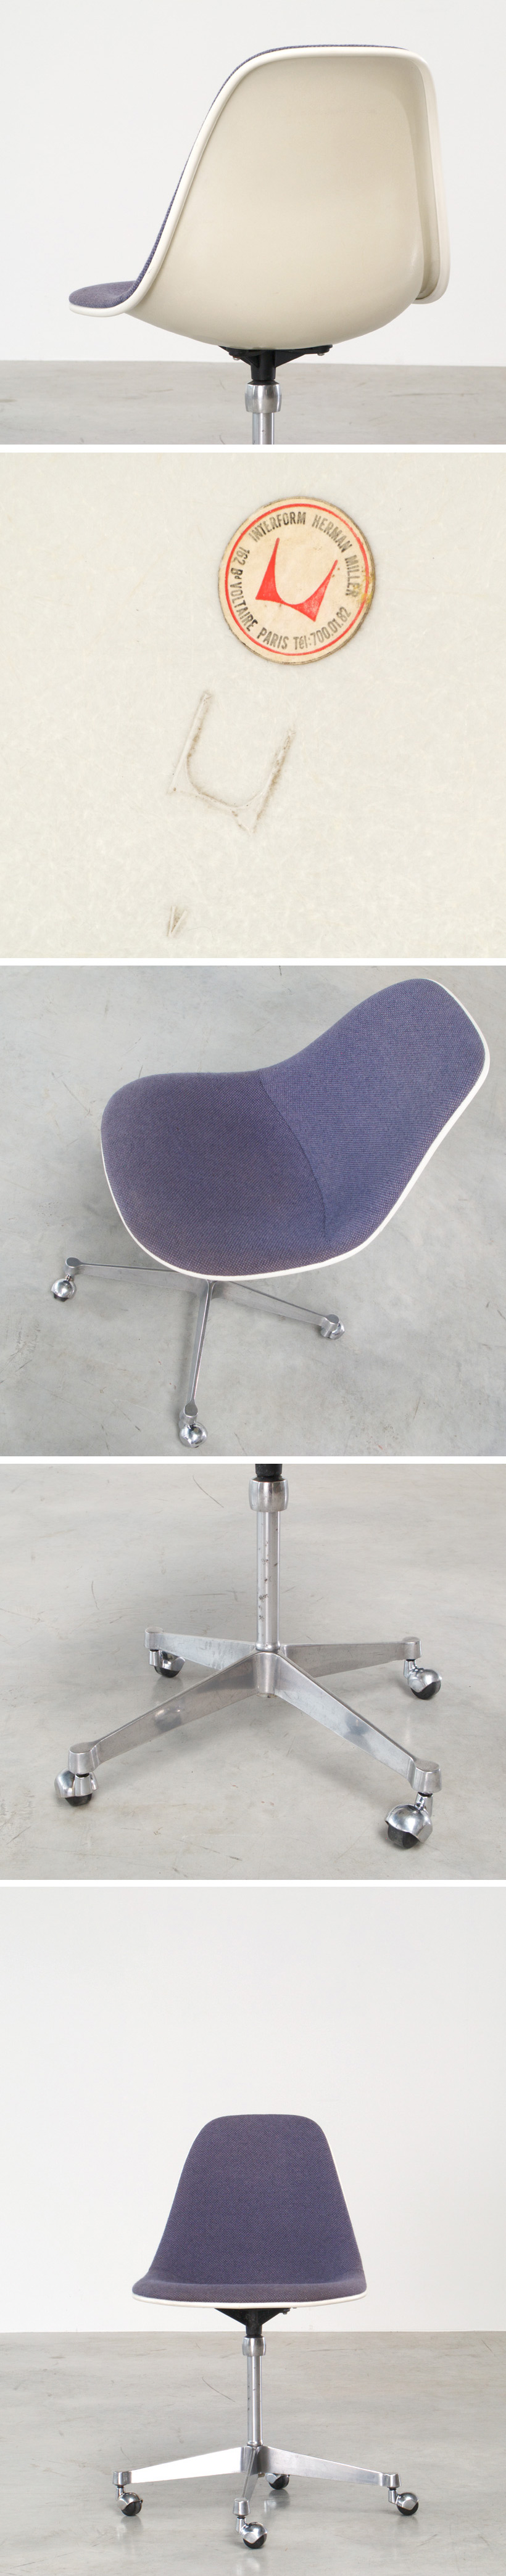 Charles and Ray Eames Secretarial chair Large